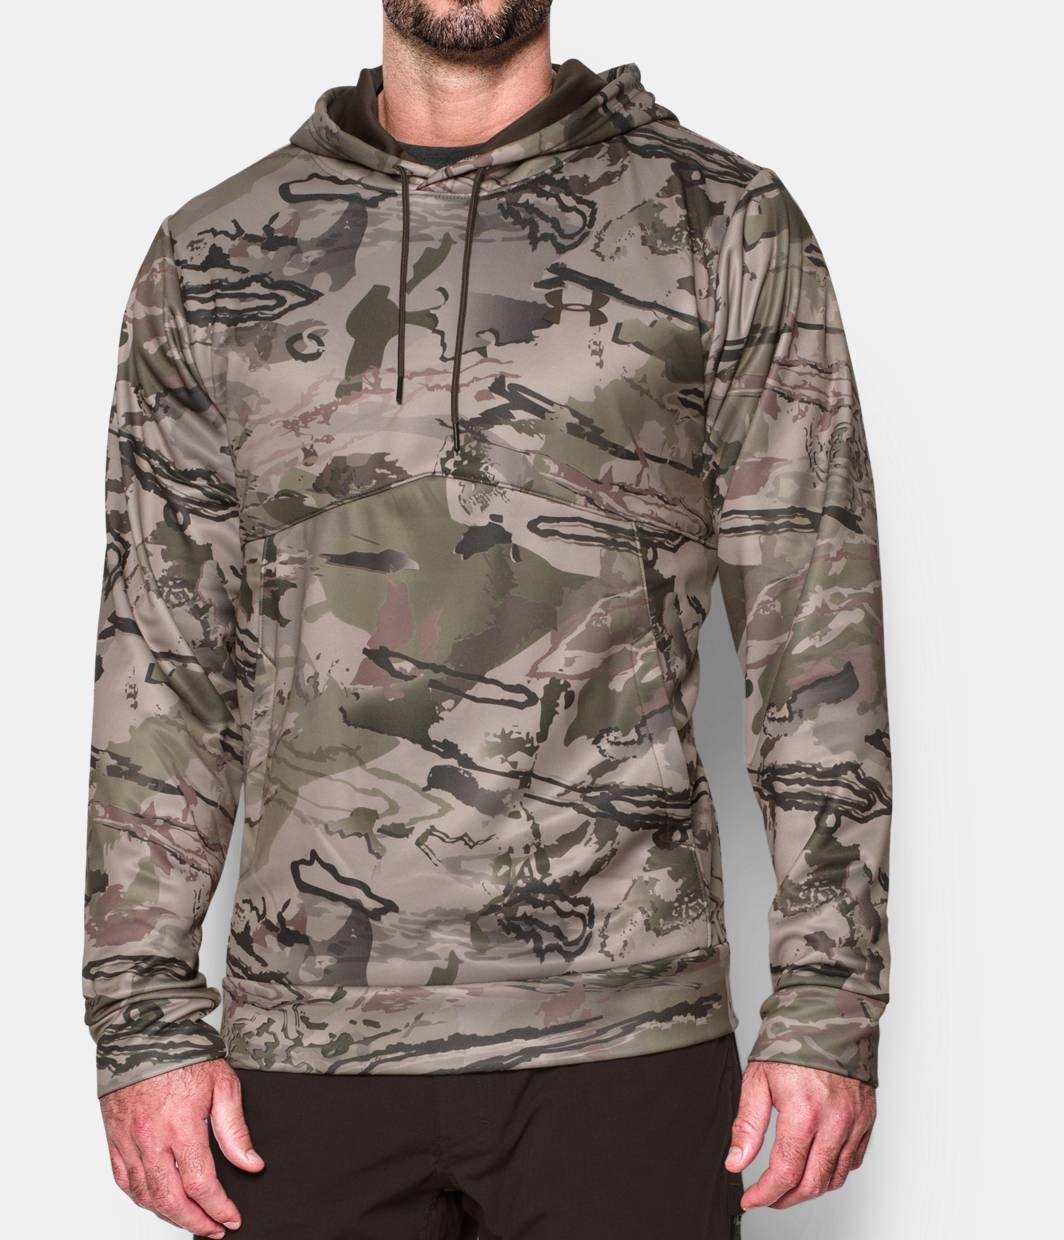 Under Armour Mens Camo Big Logo Hoodie 439228 Gander Mountain Hunting Clothes Hunting Hoodies Under Armour Camo [ 1200 x 1200 Pixel ]